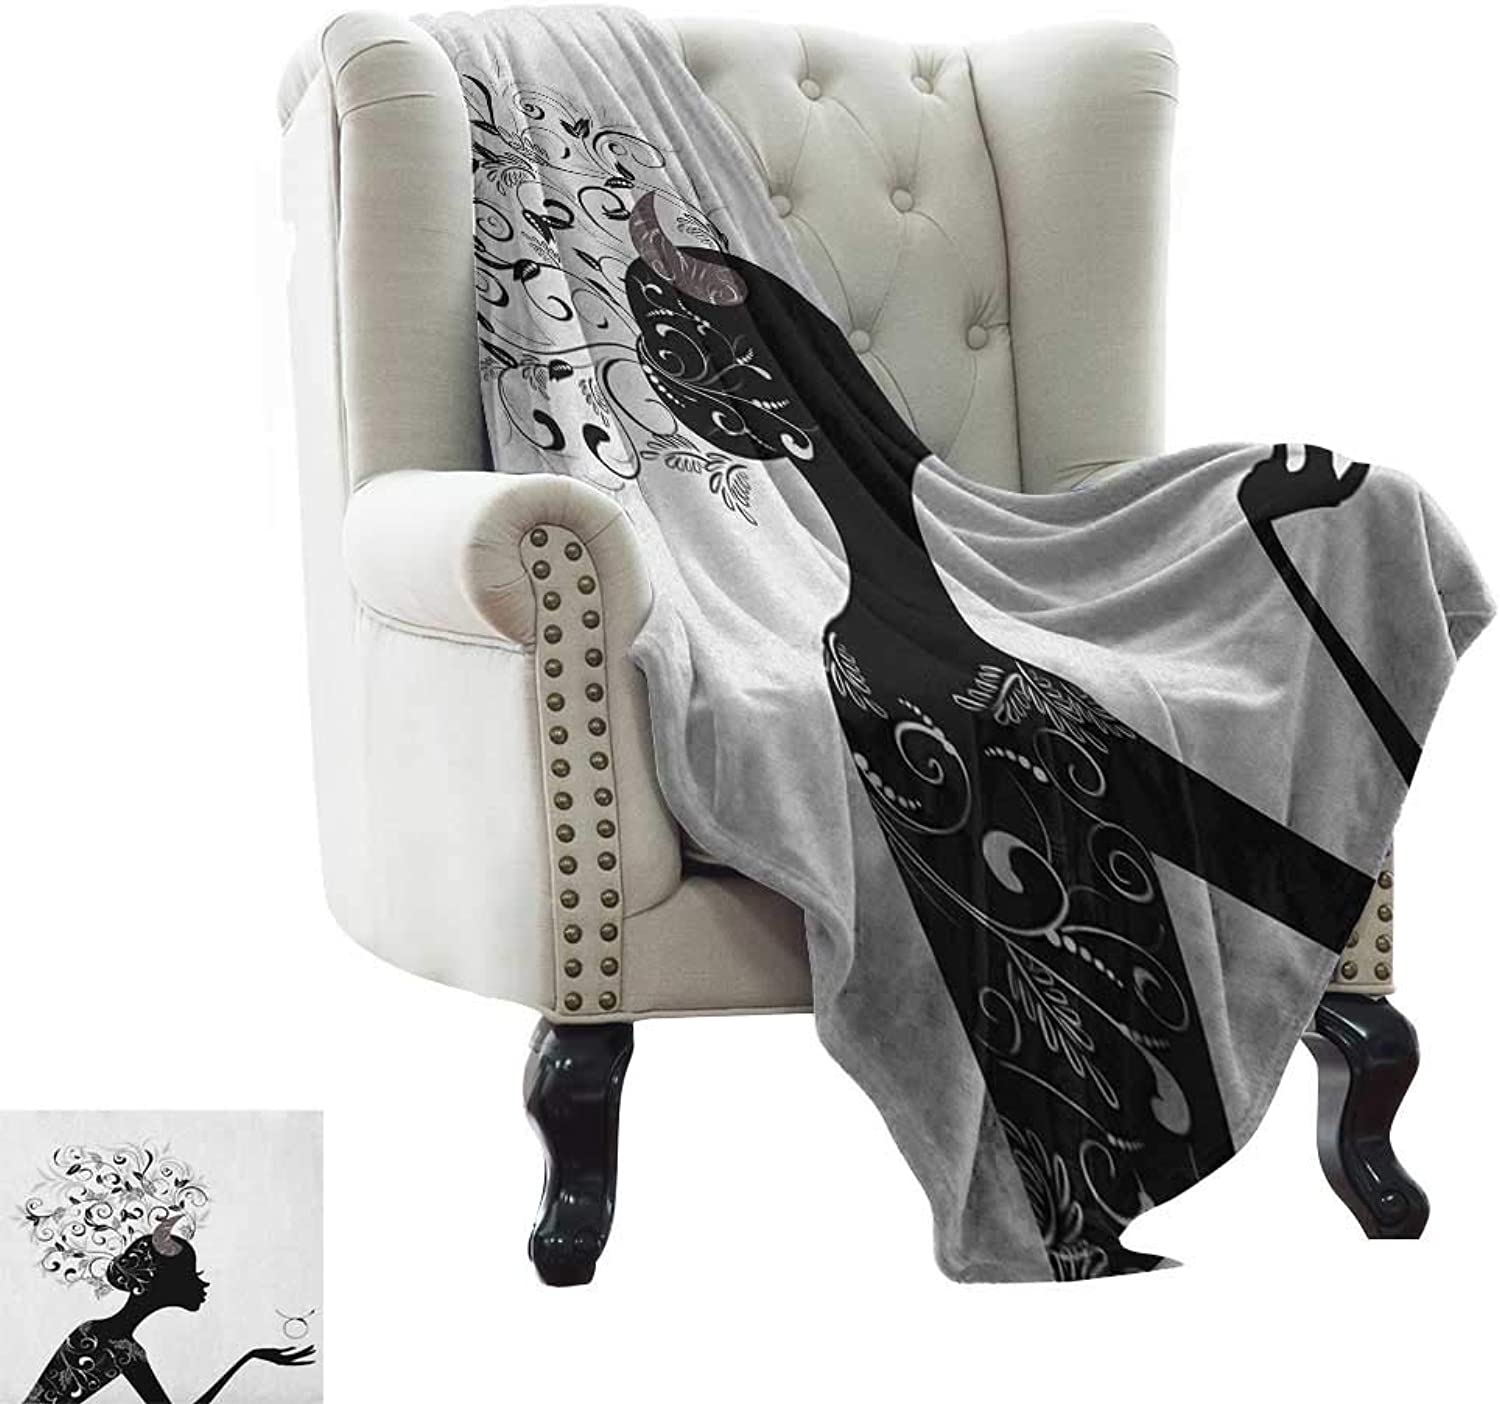 BelleAckerman Toddler Blanket Zodiac Taurus,Fashion Girl Black Silhouette with Floral Hairdo and Dress Modern Icon, Black and White Microfiber All Season Blanket for Bed or Couch 35 x60